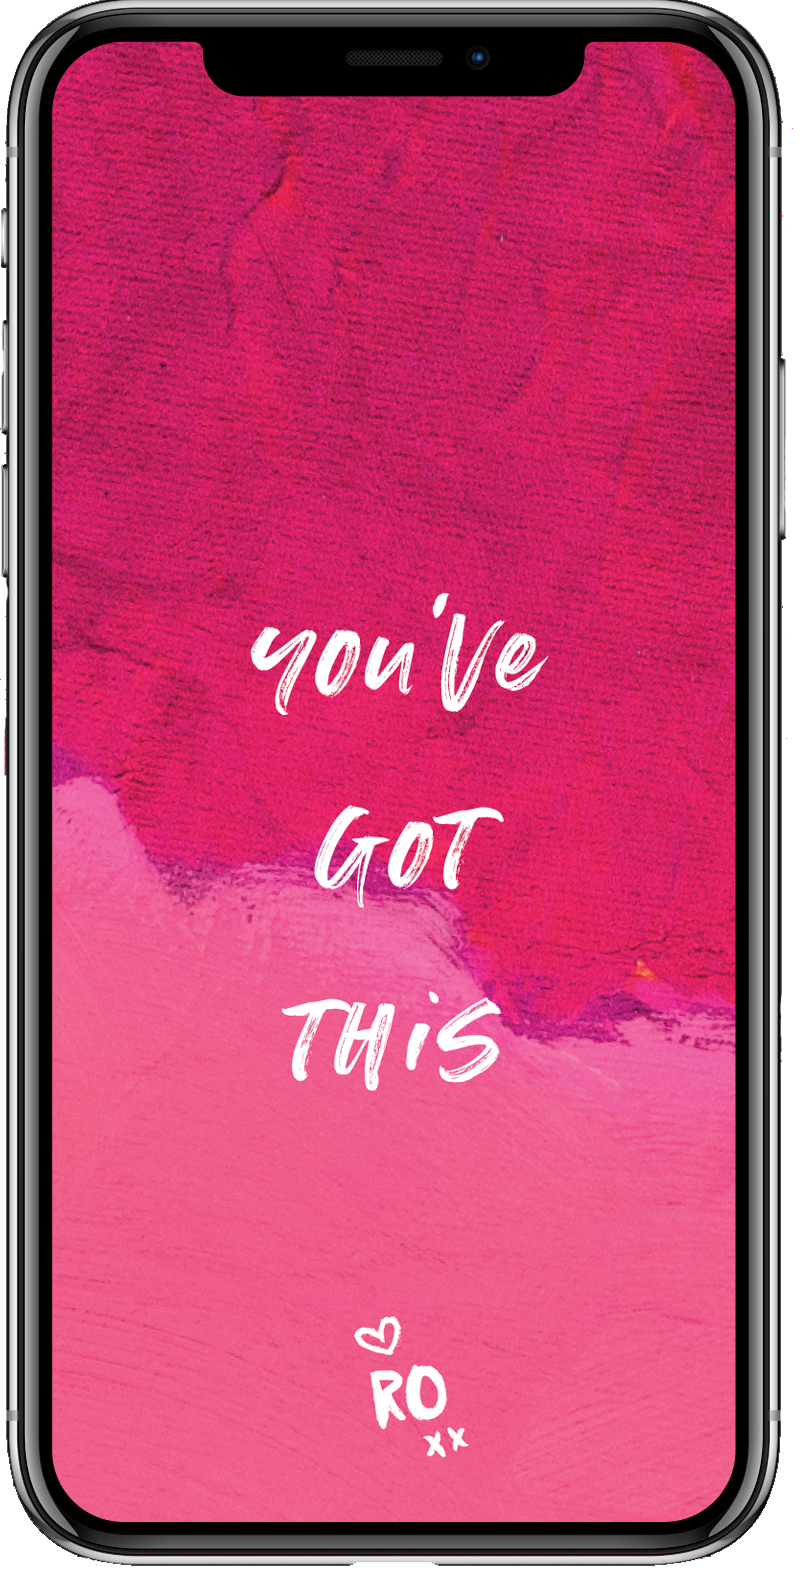 You've Got This - Ruby Olive Wallpaper